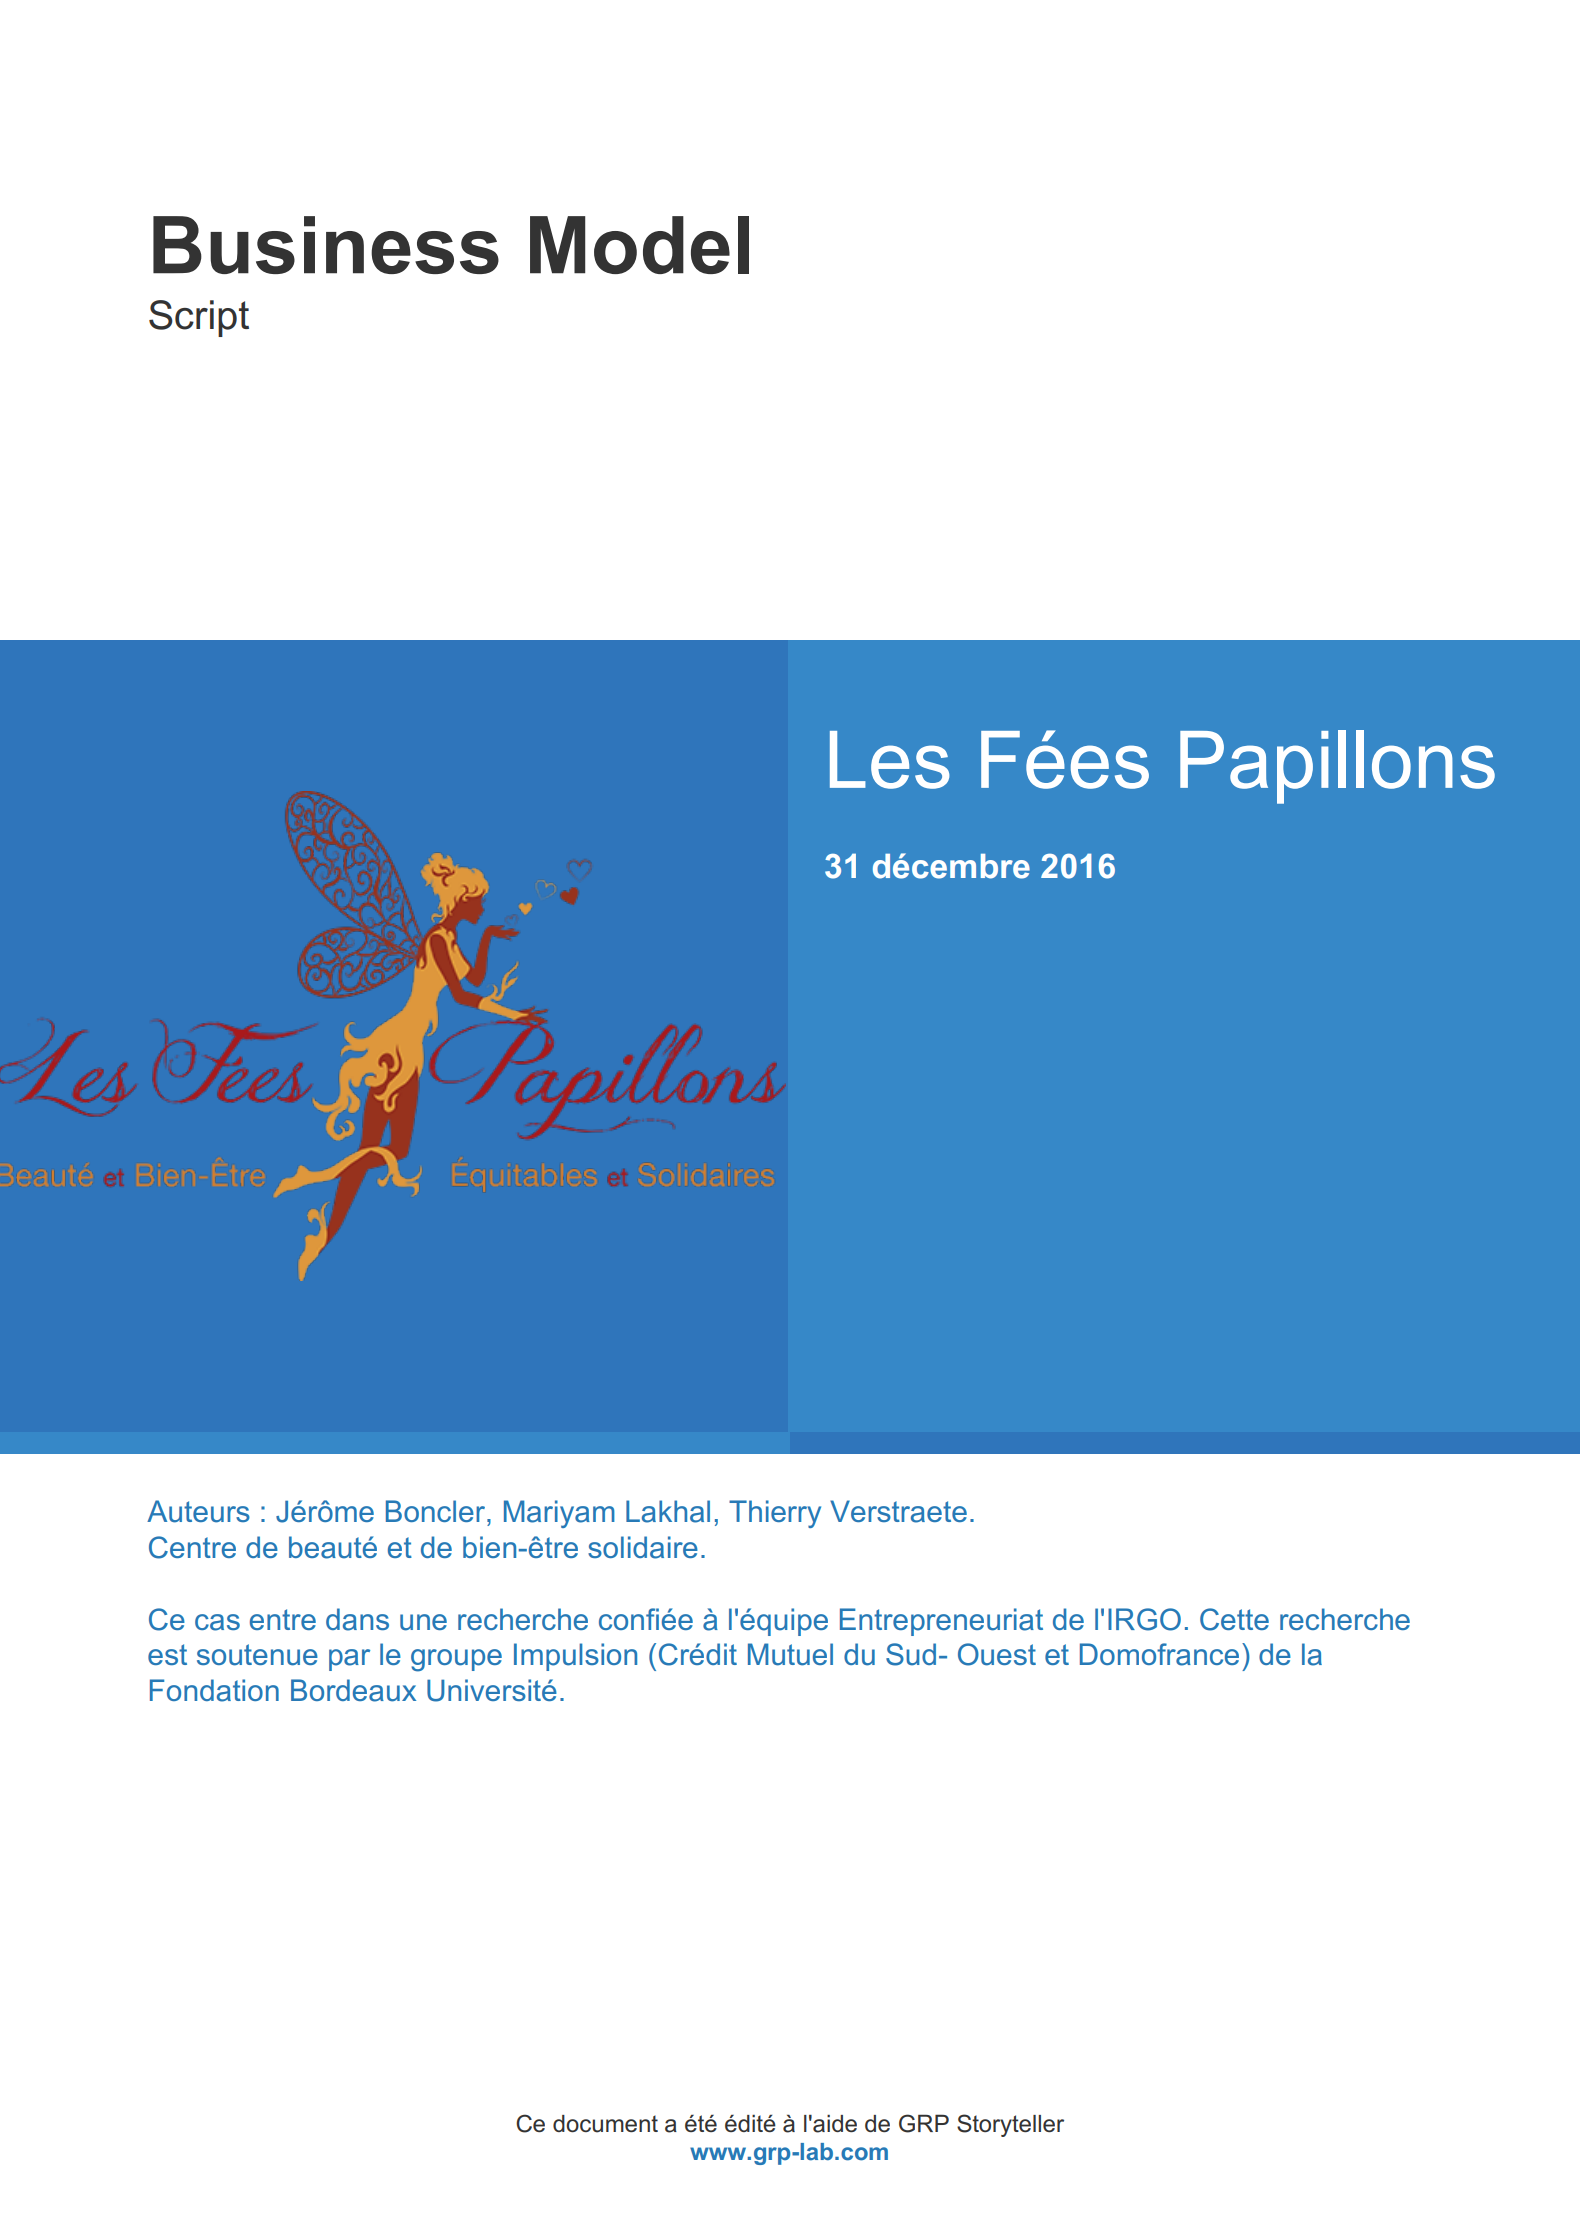 Les Fées Papillons - Business Model Version Script